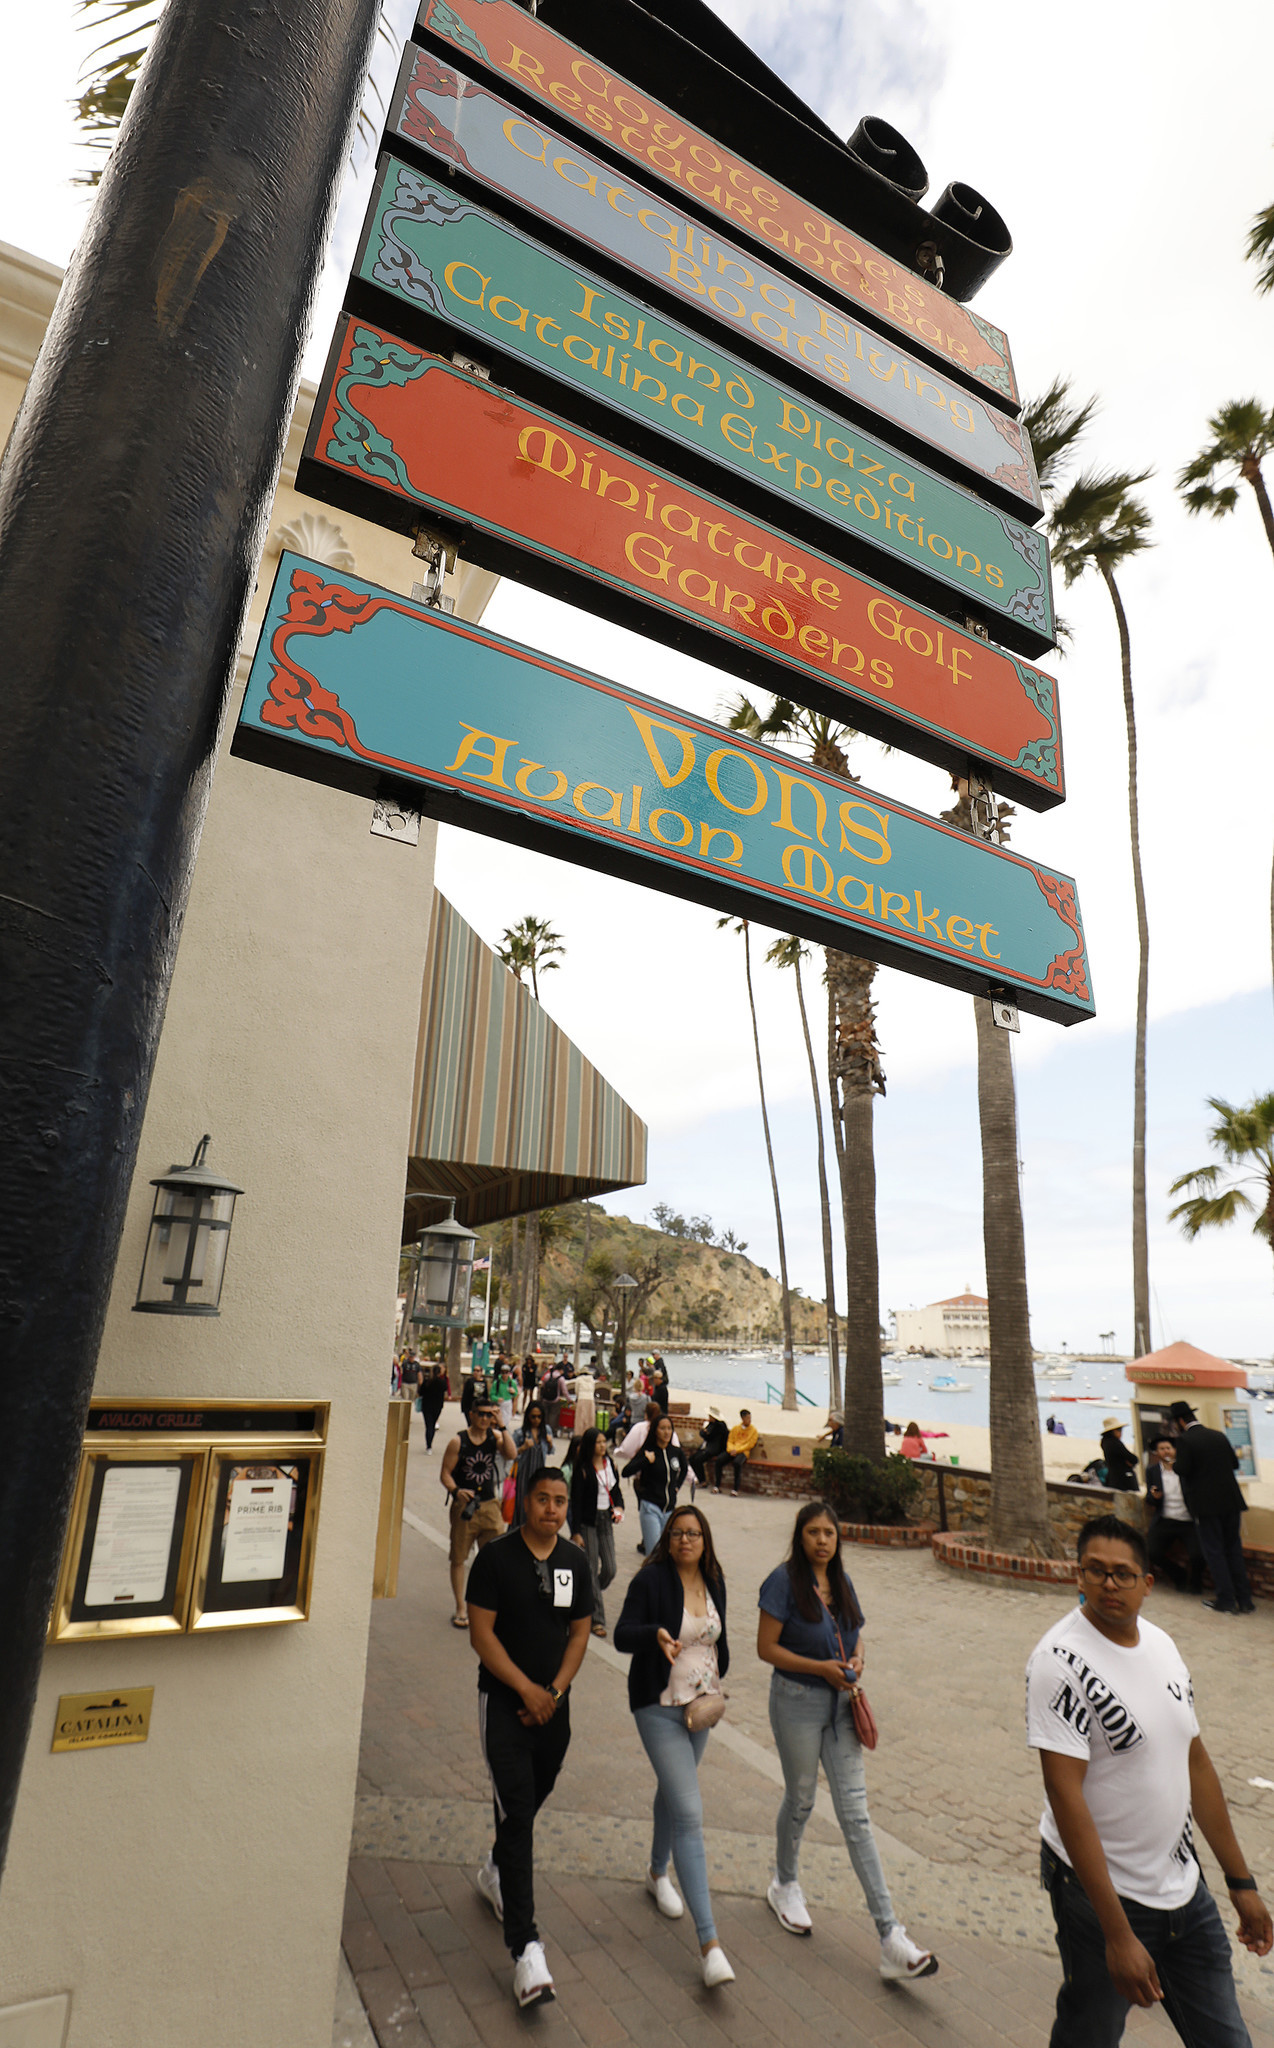 AVALON CATALINA ISLAND, CA - APRIL 16, 2019 - Sign at Crescent and Catalina Ave overlooking the Har